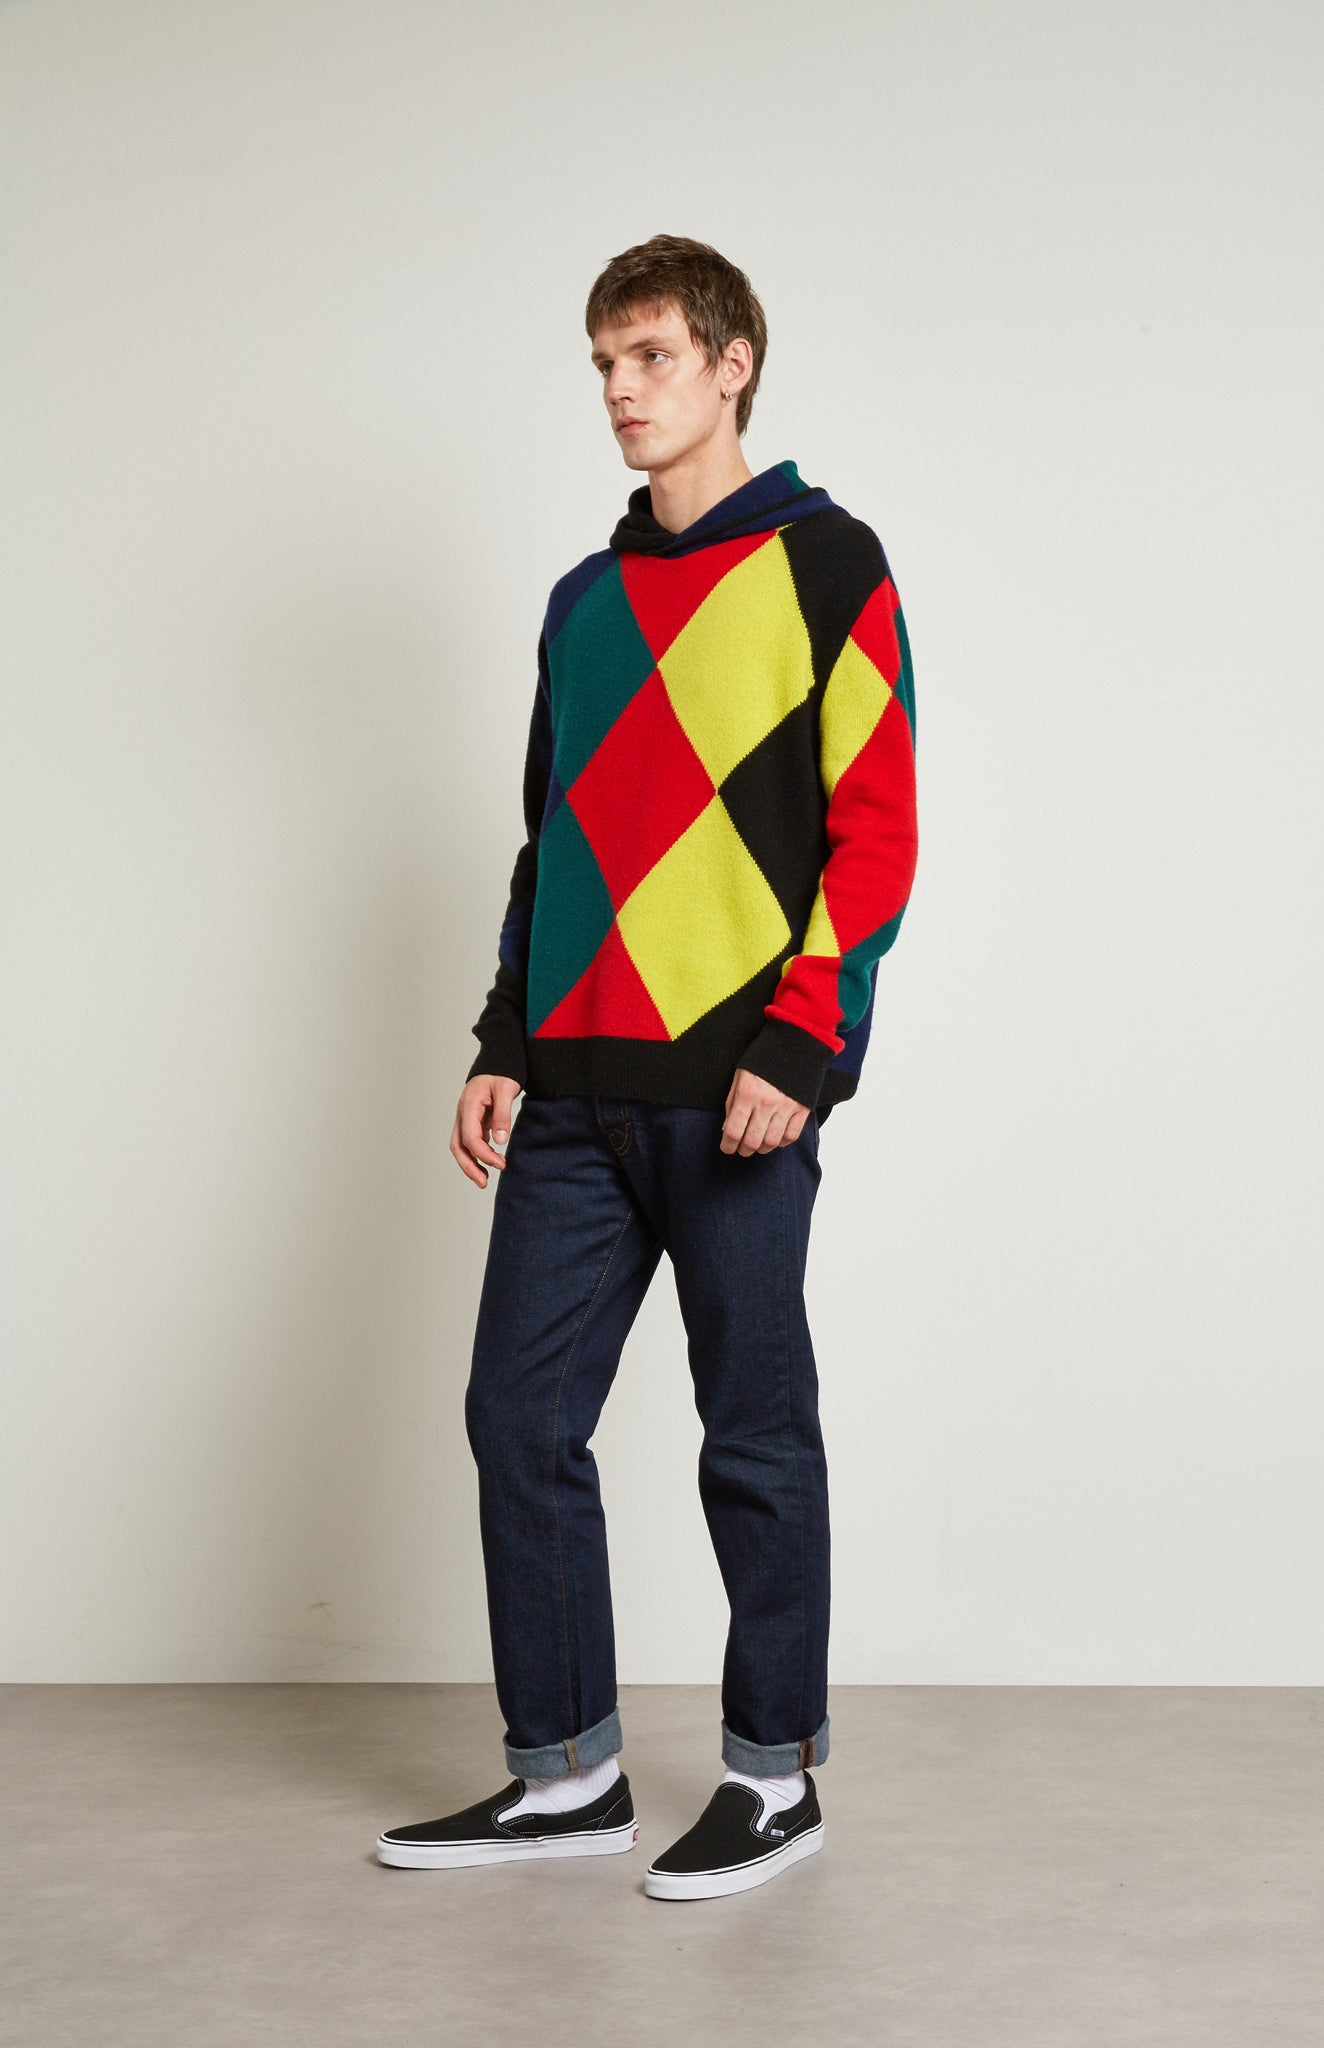 Pringle Reissued Unisex Harlequin Argyle Hoodie on male model